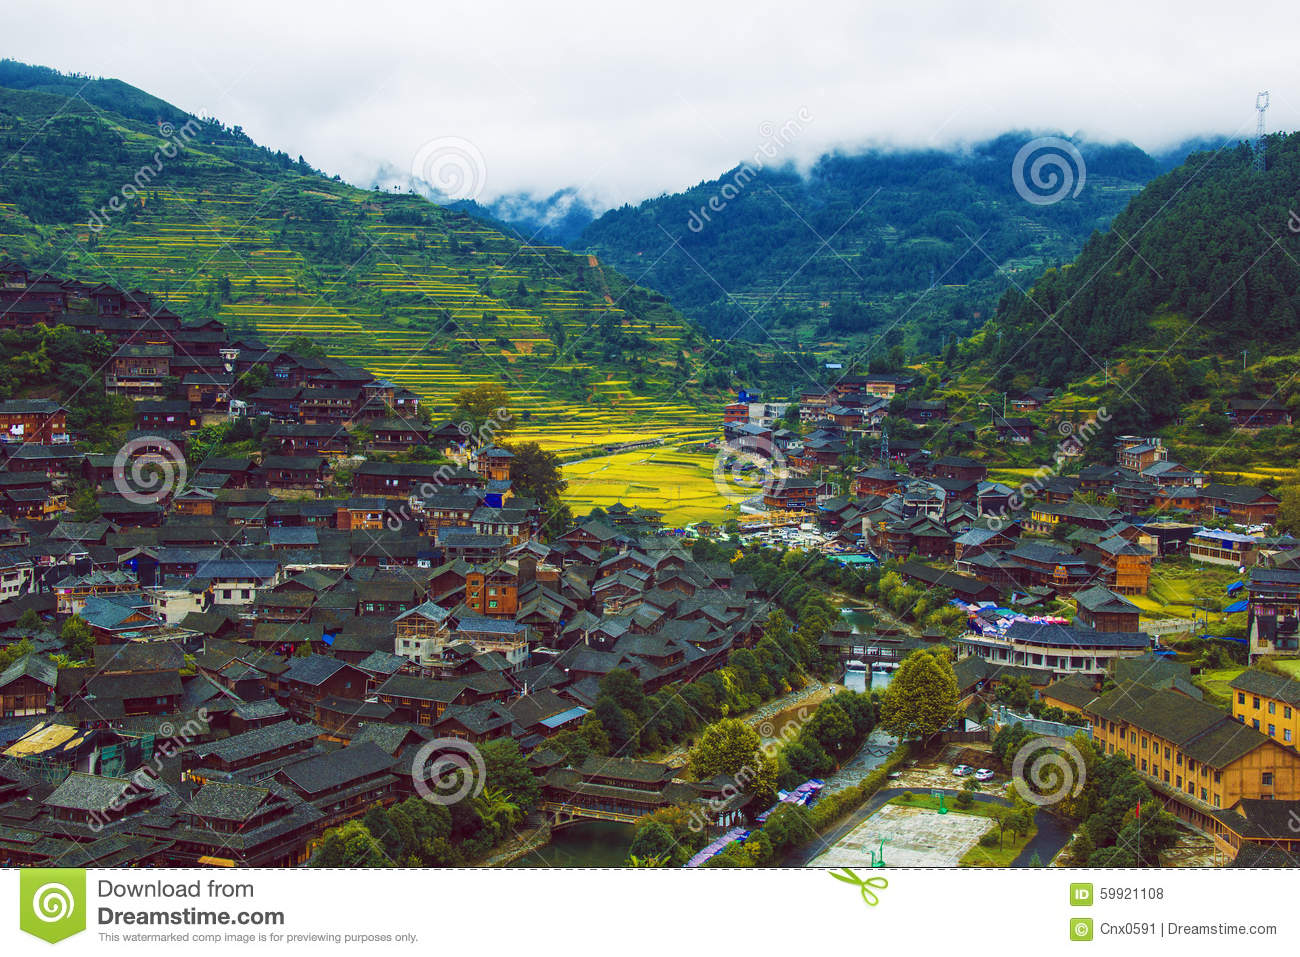 The miao scenery